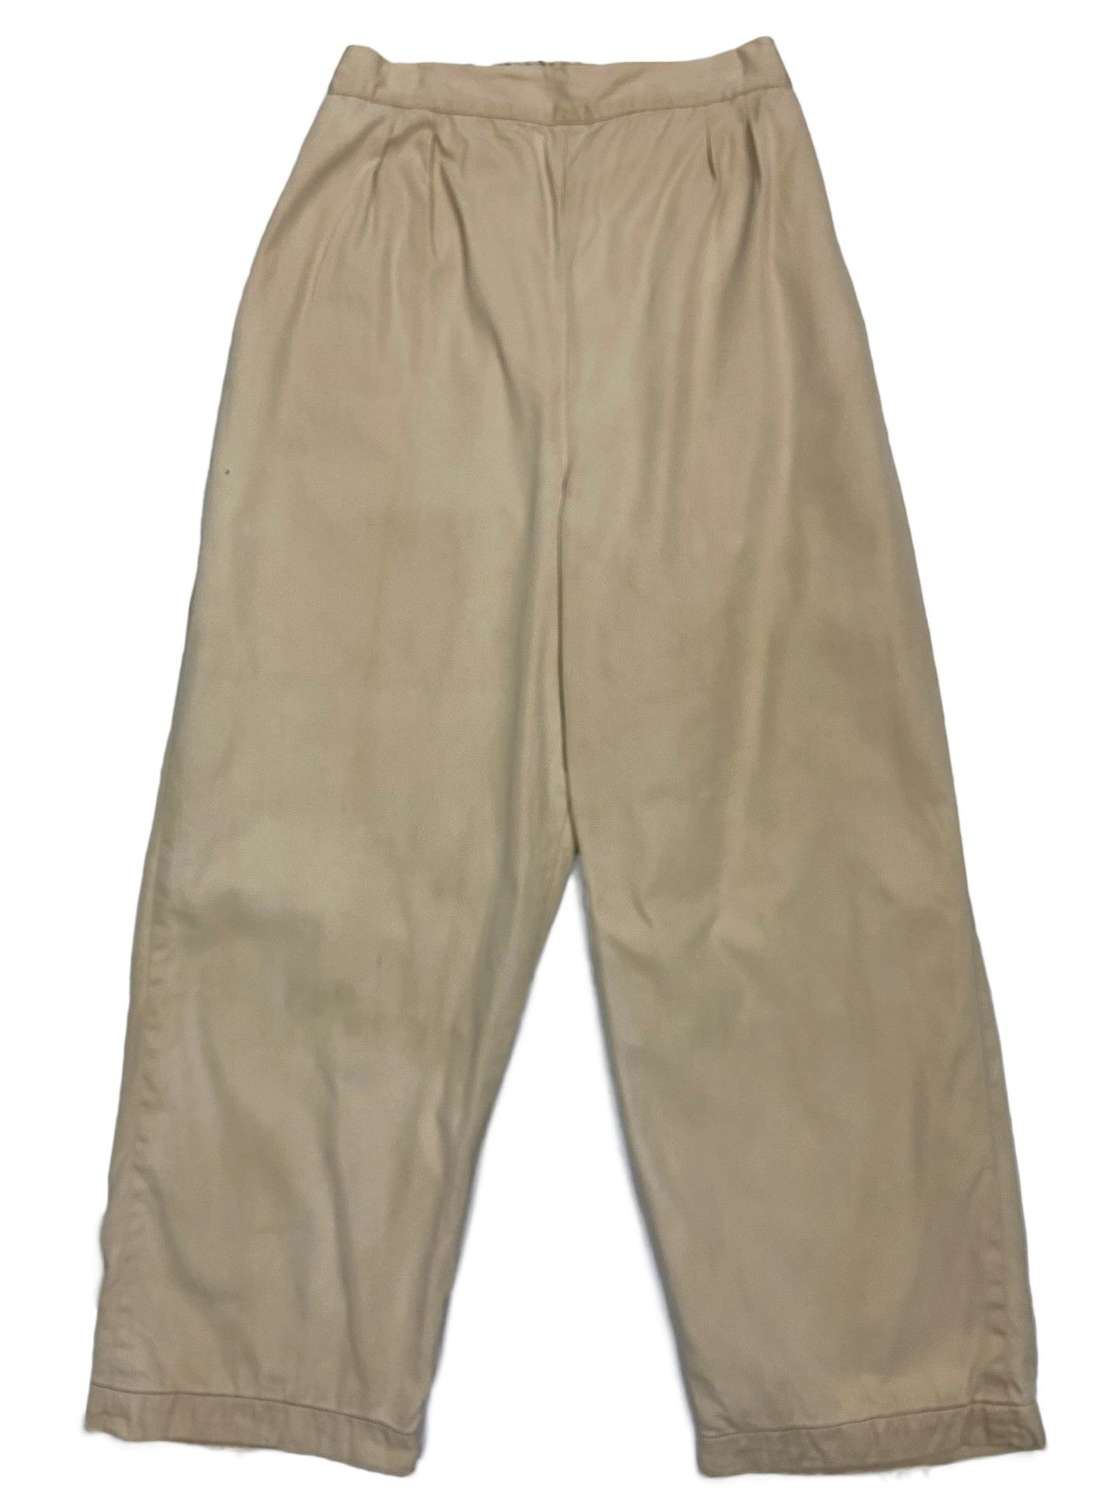 Original 1940s Ladies Golf Trousers by 'Swallow'